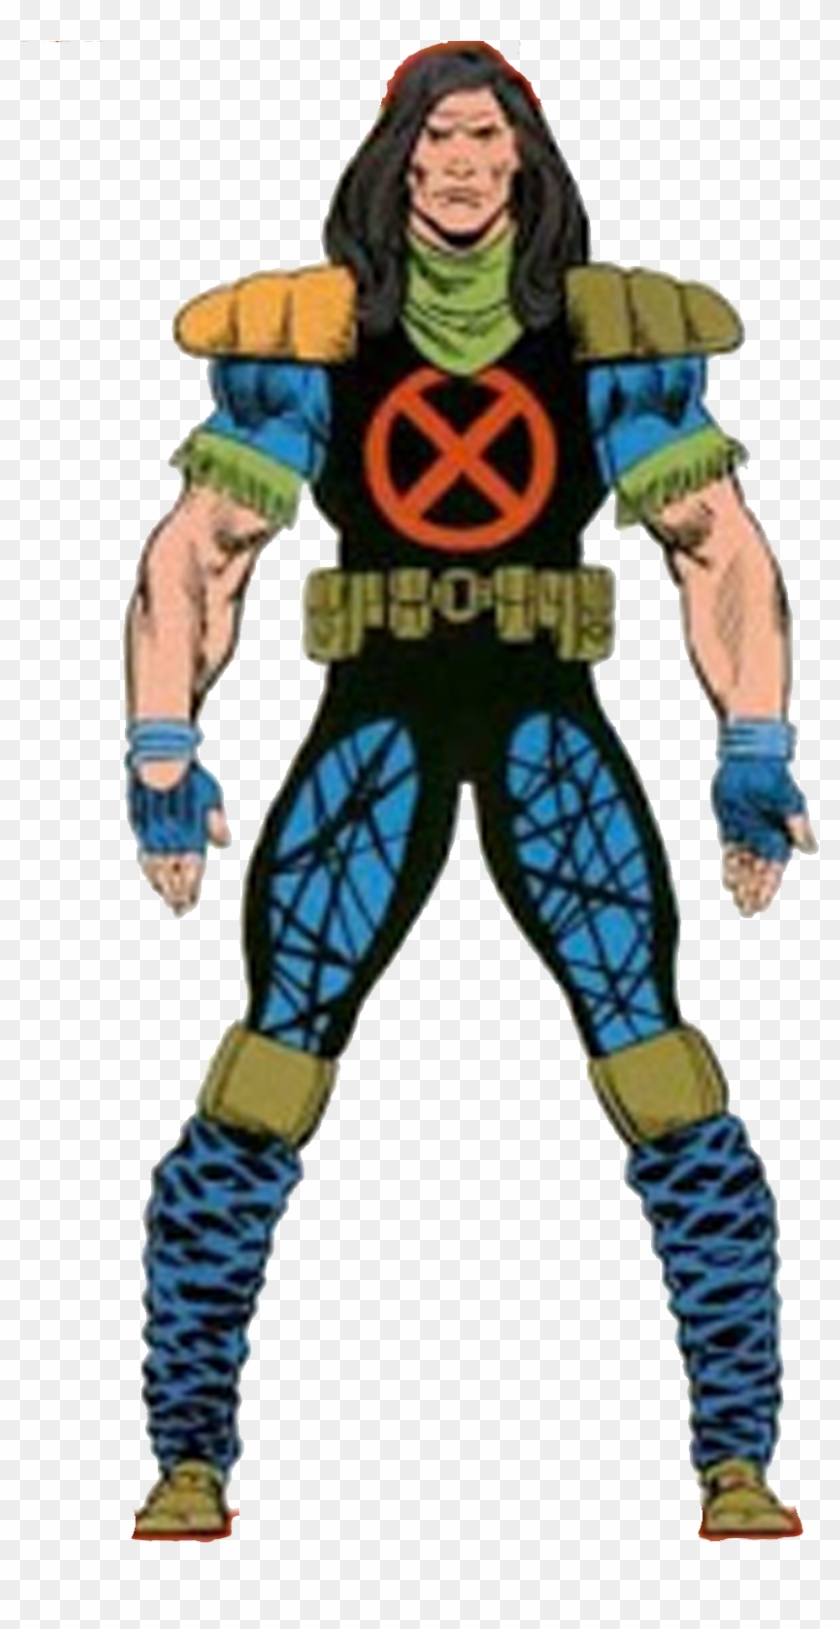 Era Do Apocalypse - X Force Characters In Deadpool 2 Clipart #2036766